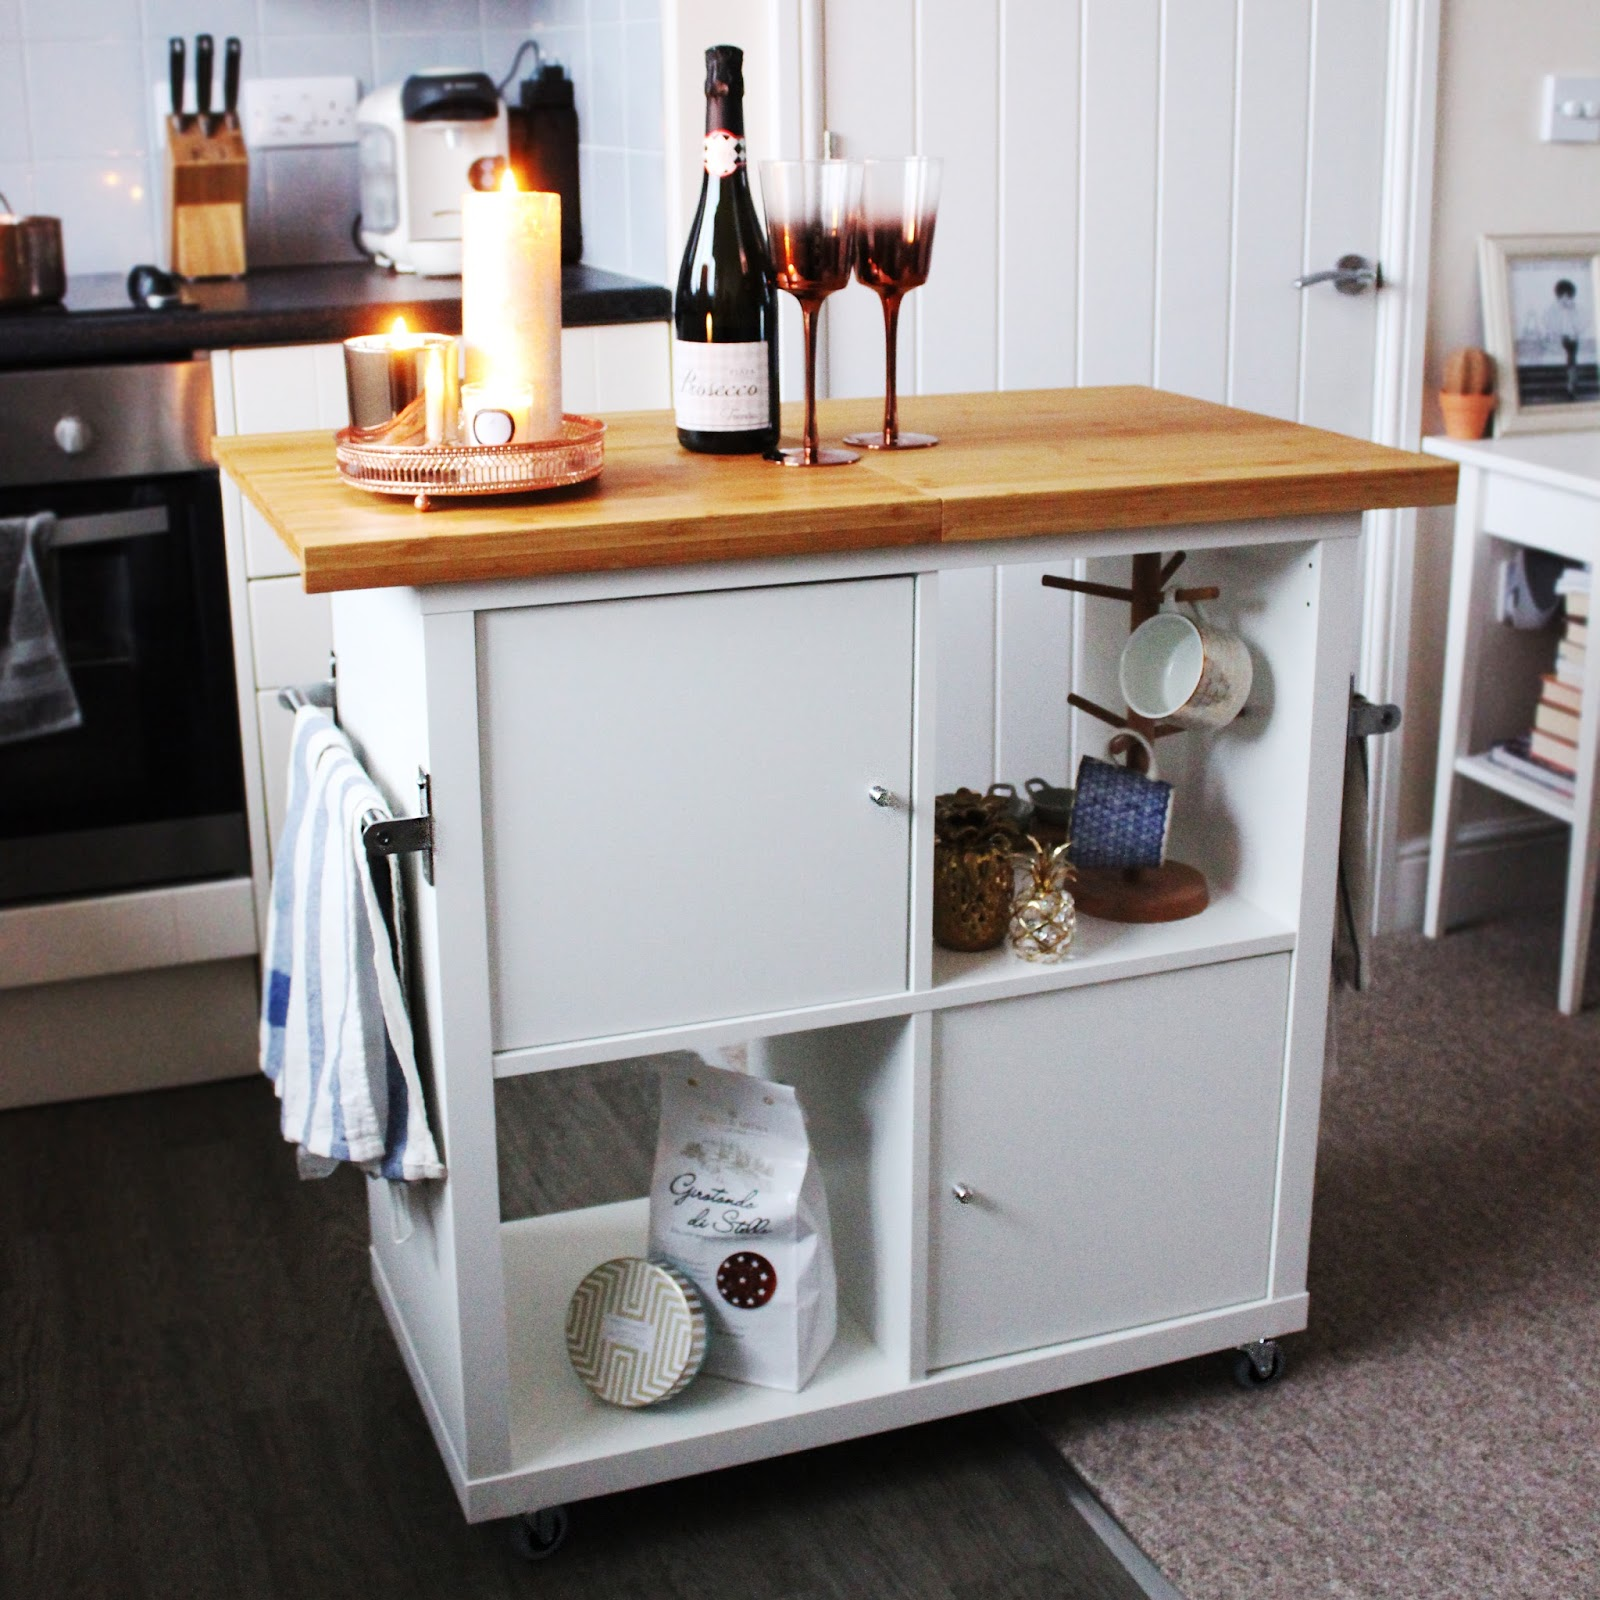 This kitchen island has tons of storage space.